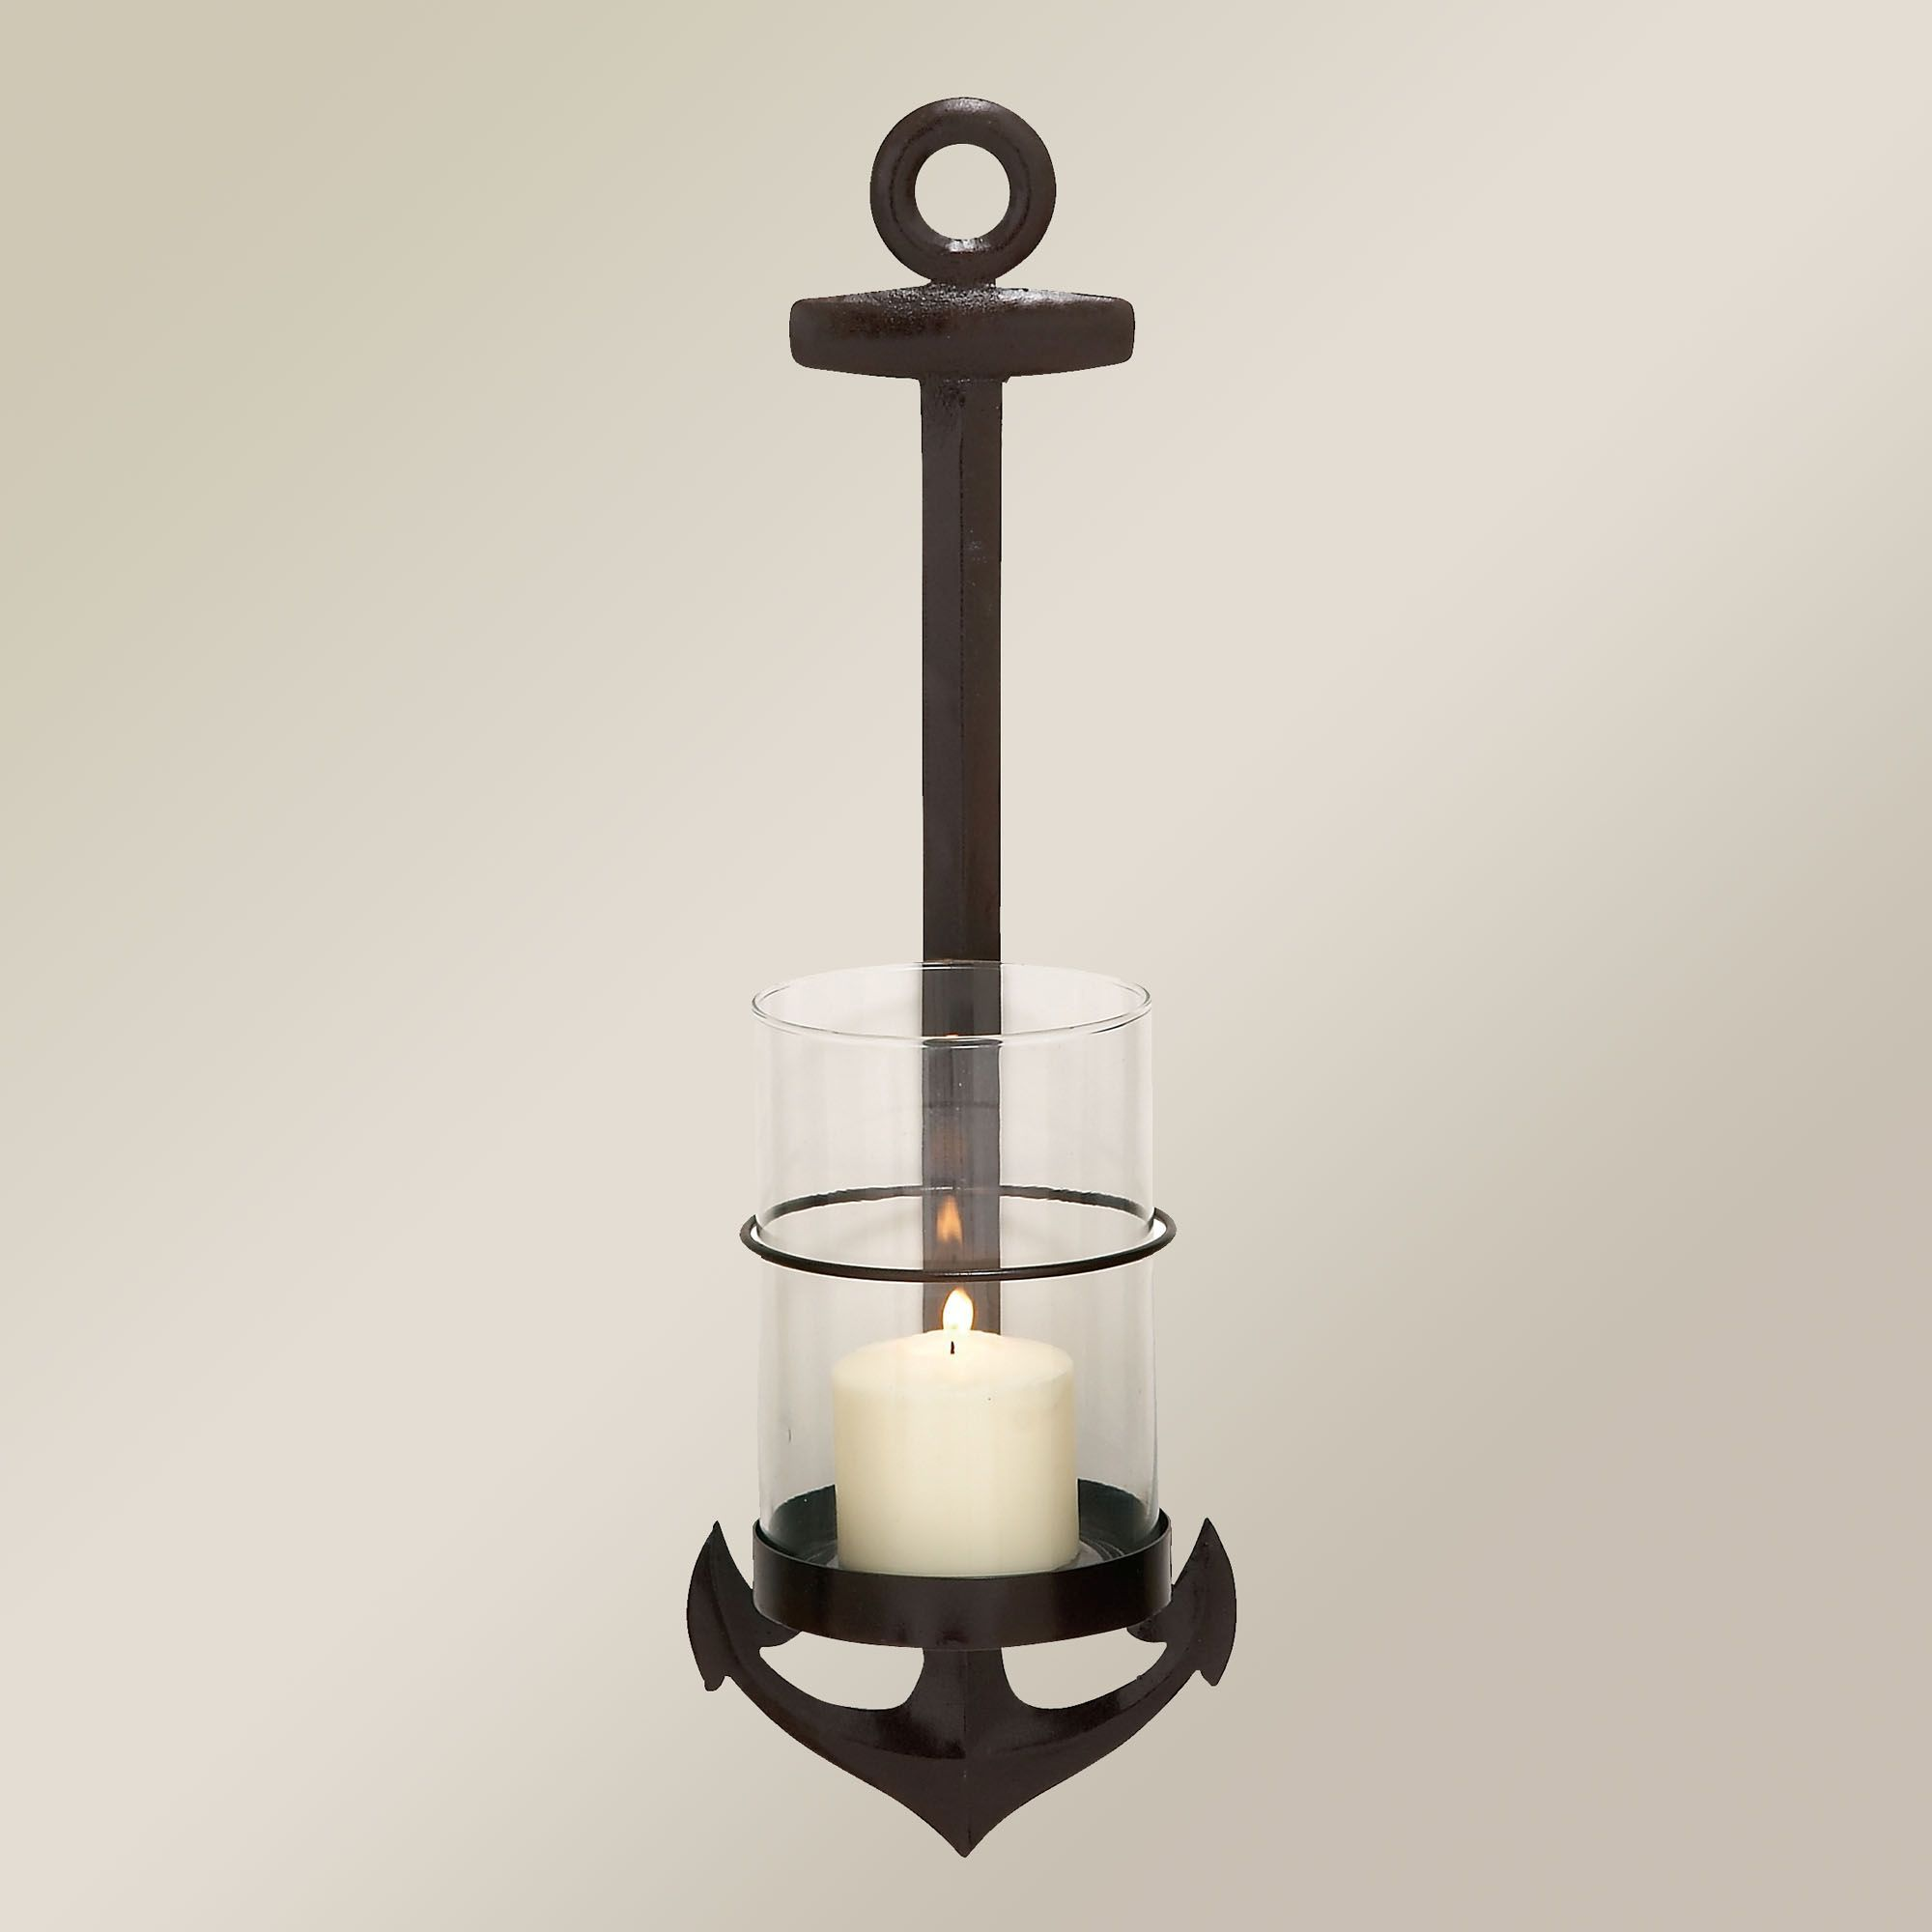 imanada indoor lighting light frenchay modern nautical sconce wayfair outstanding sconces wall brilliance allmodern